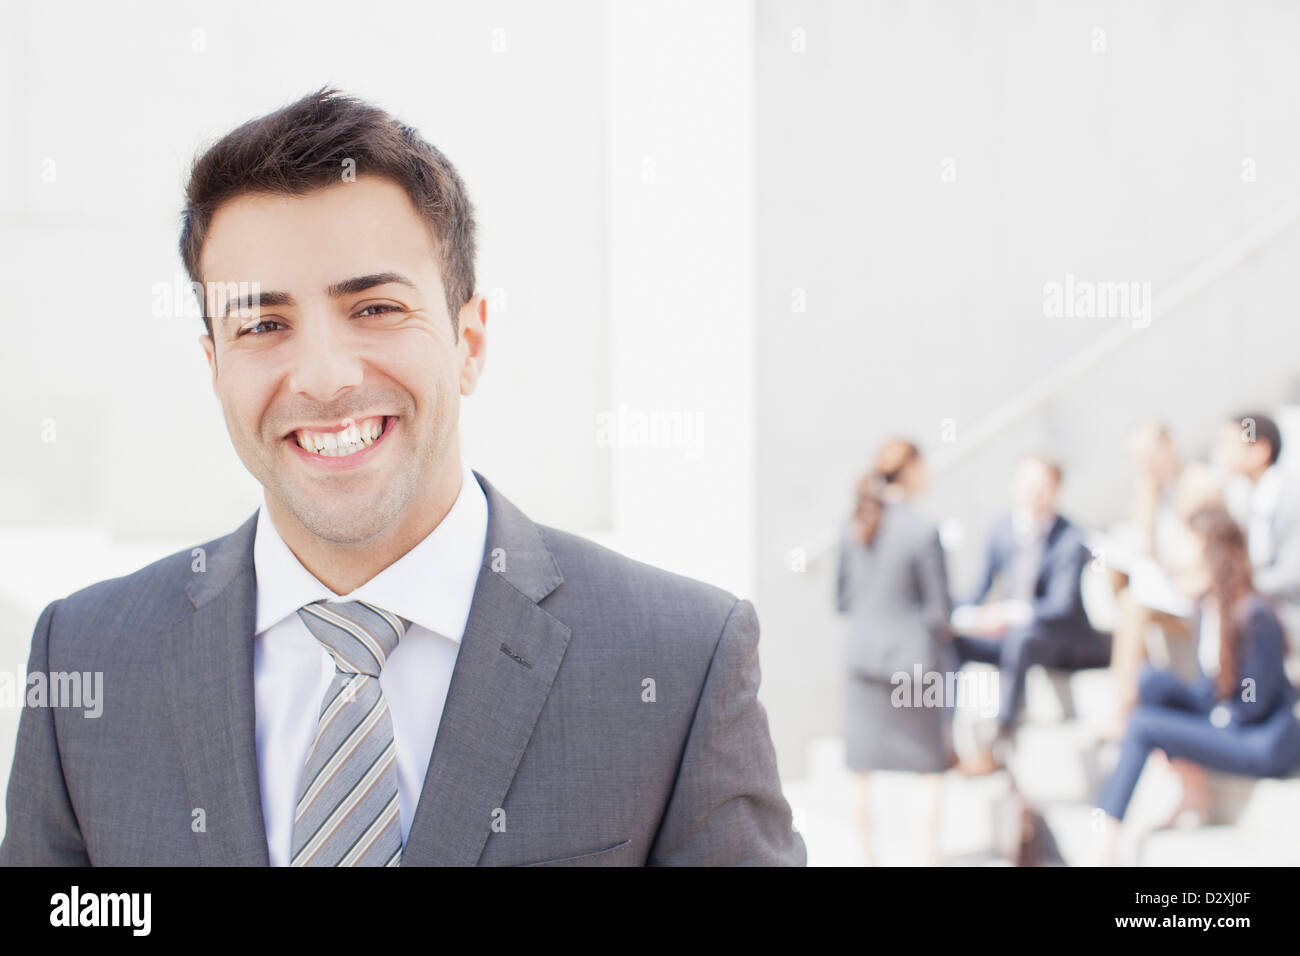 Portrait of smiling man with co-workers in background Stock Photo